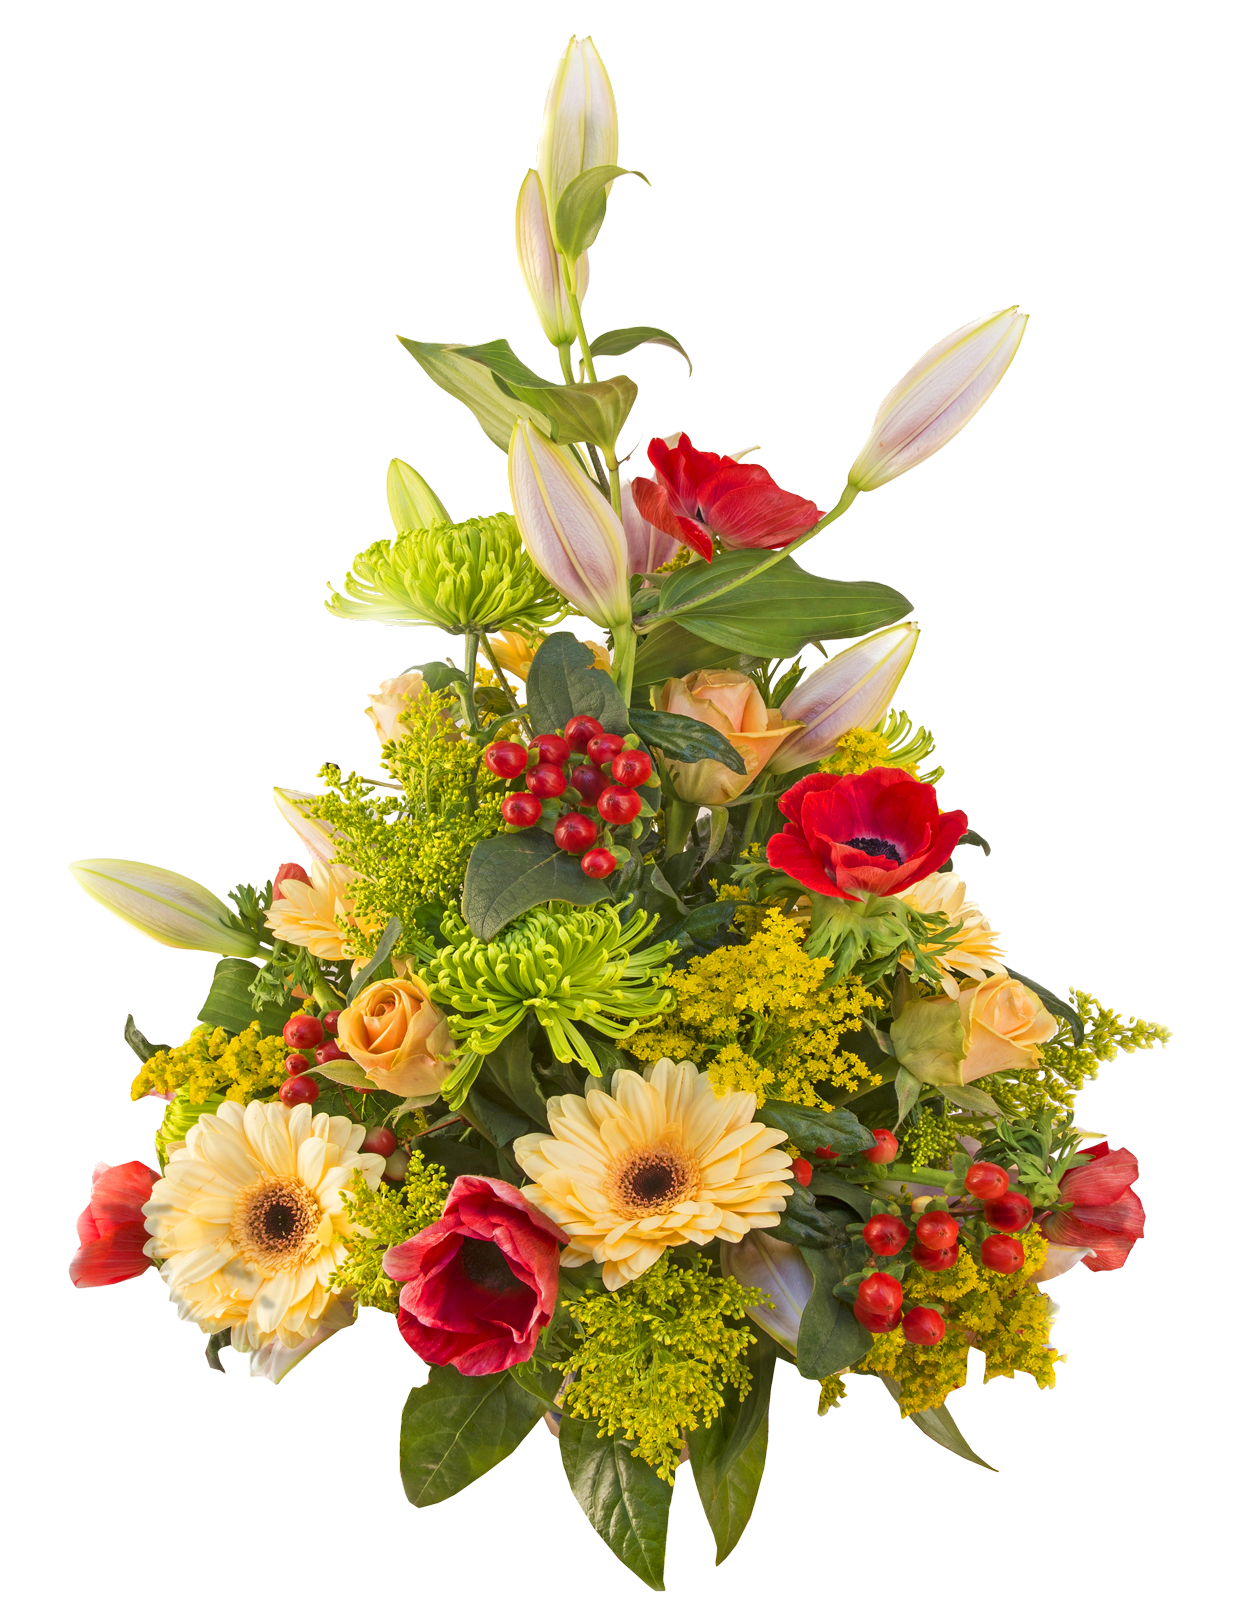 flower bouquet png image pure transparent #34071